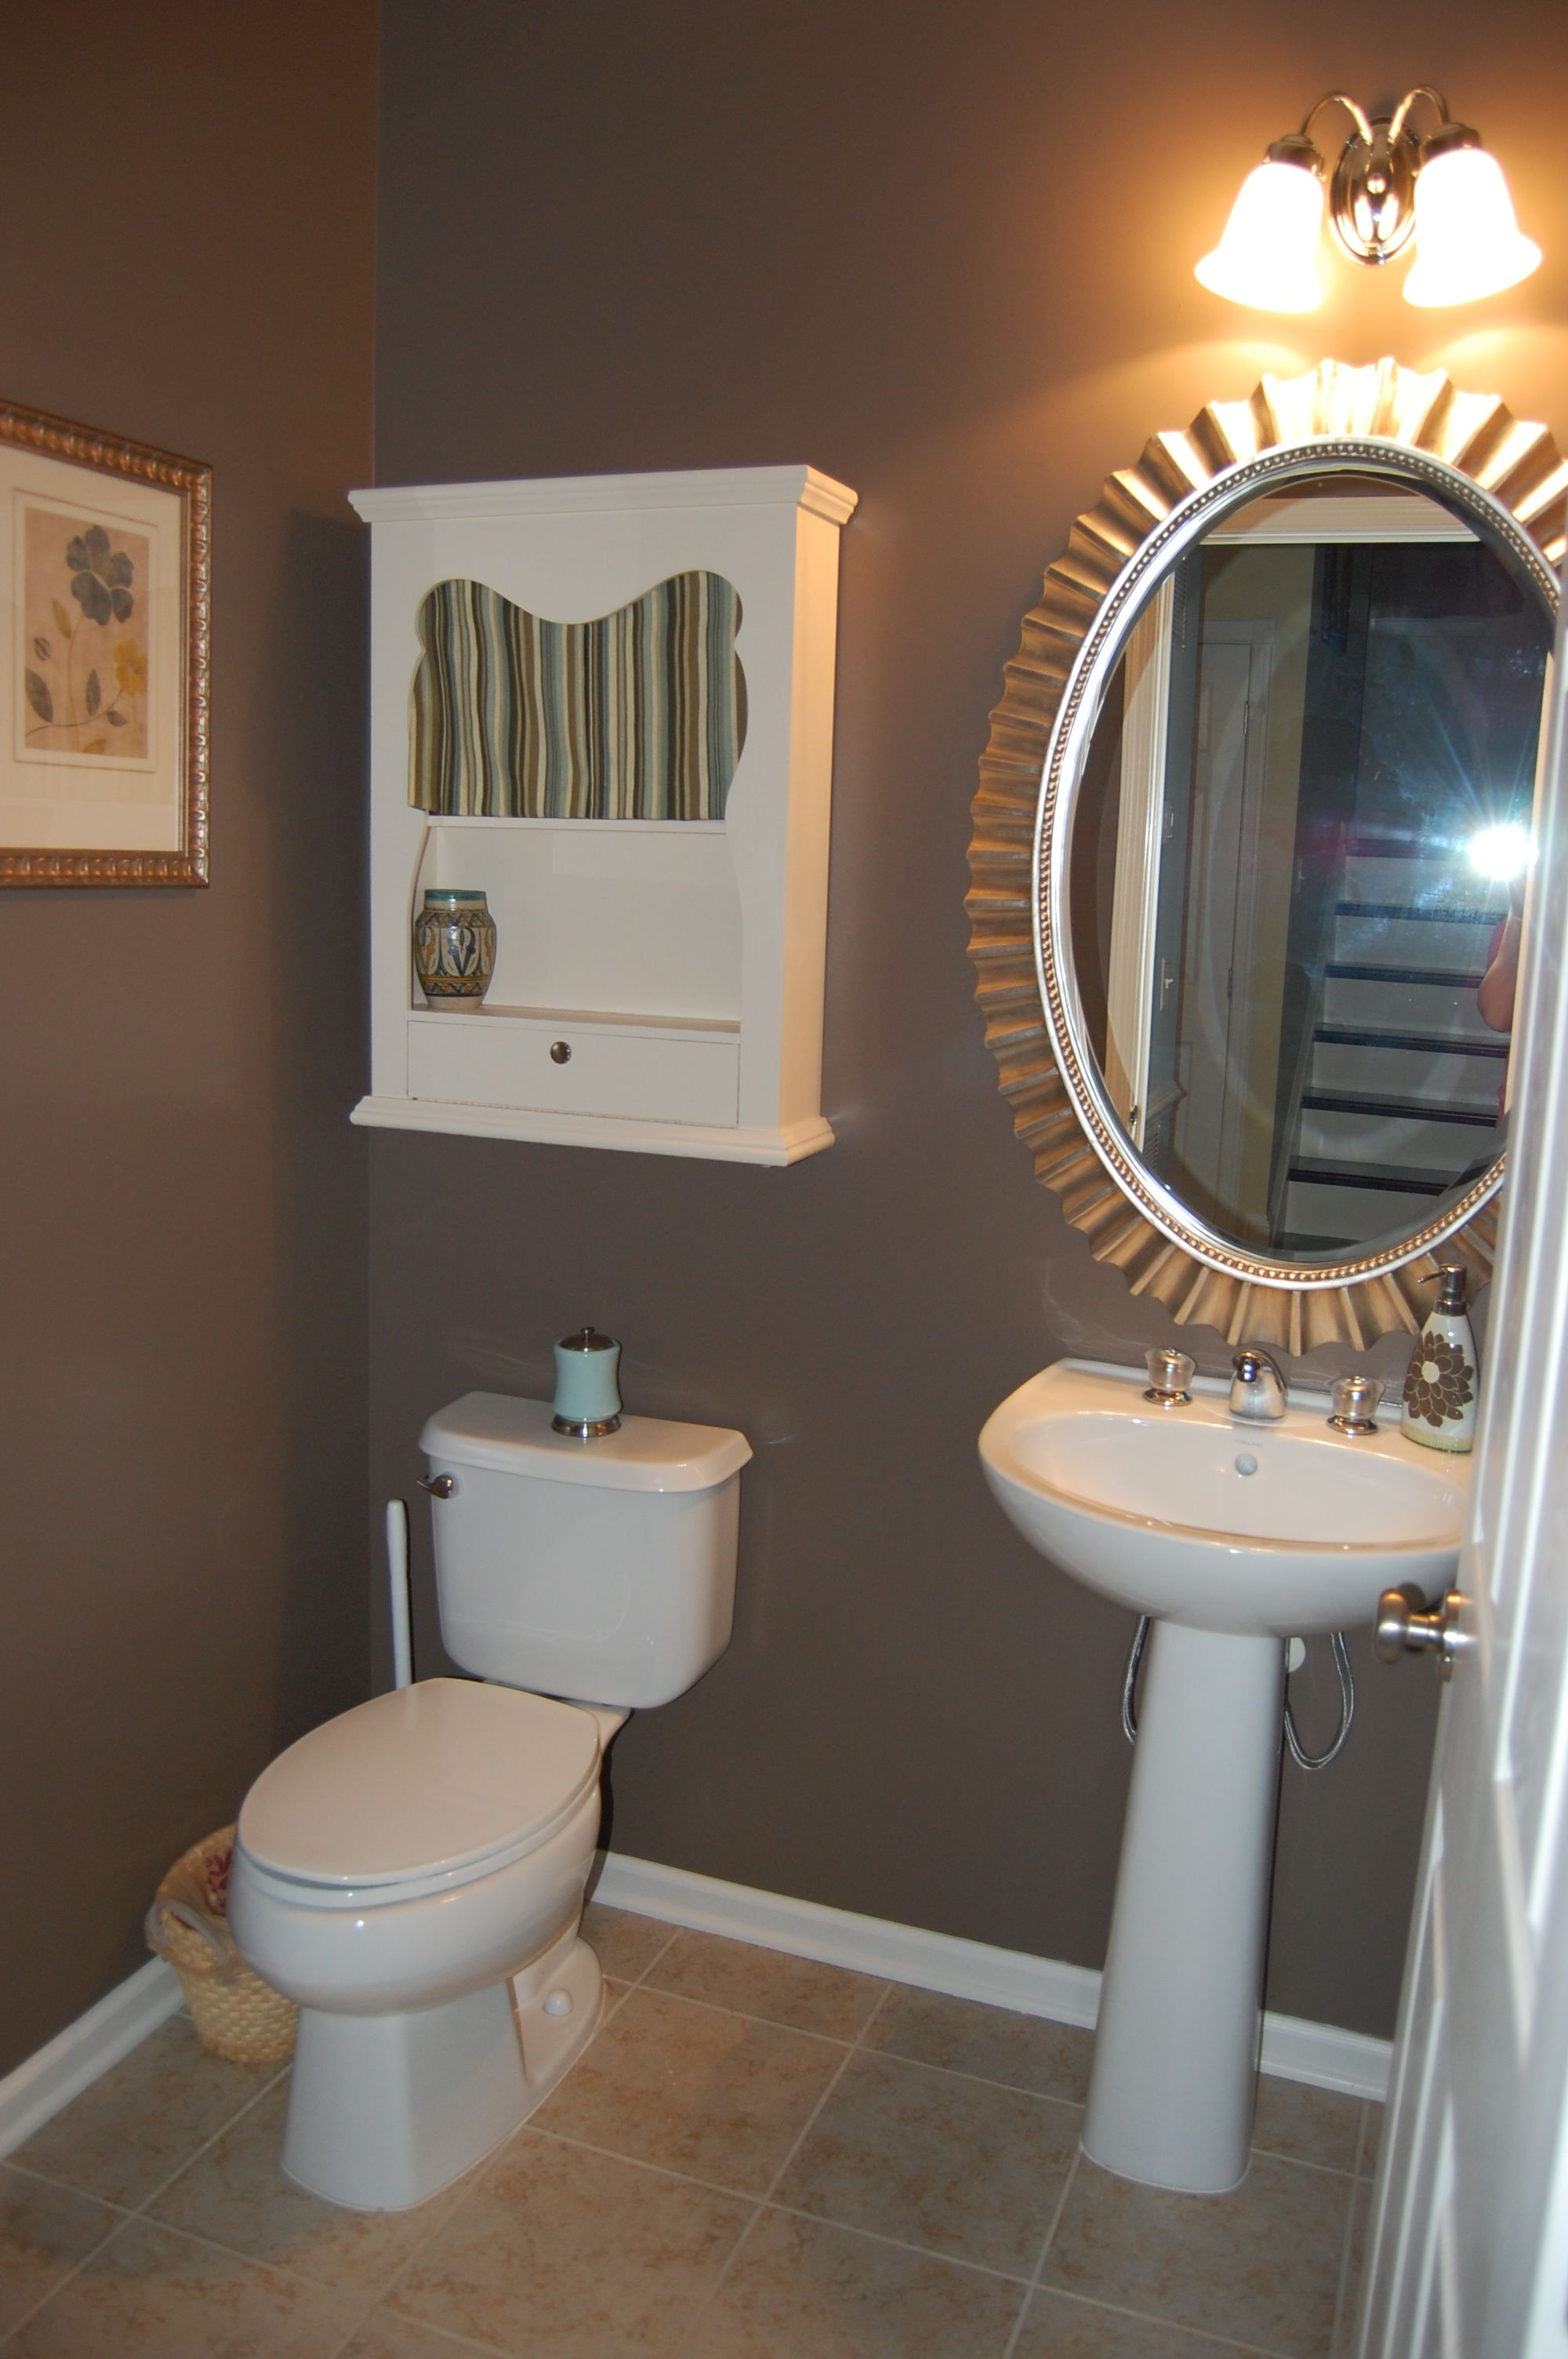 Powder room bathroom color projects pinterest like Bathroom color ideas